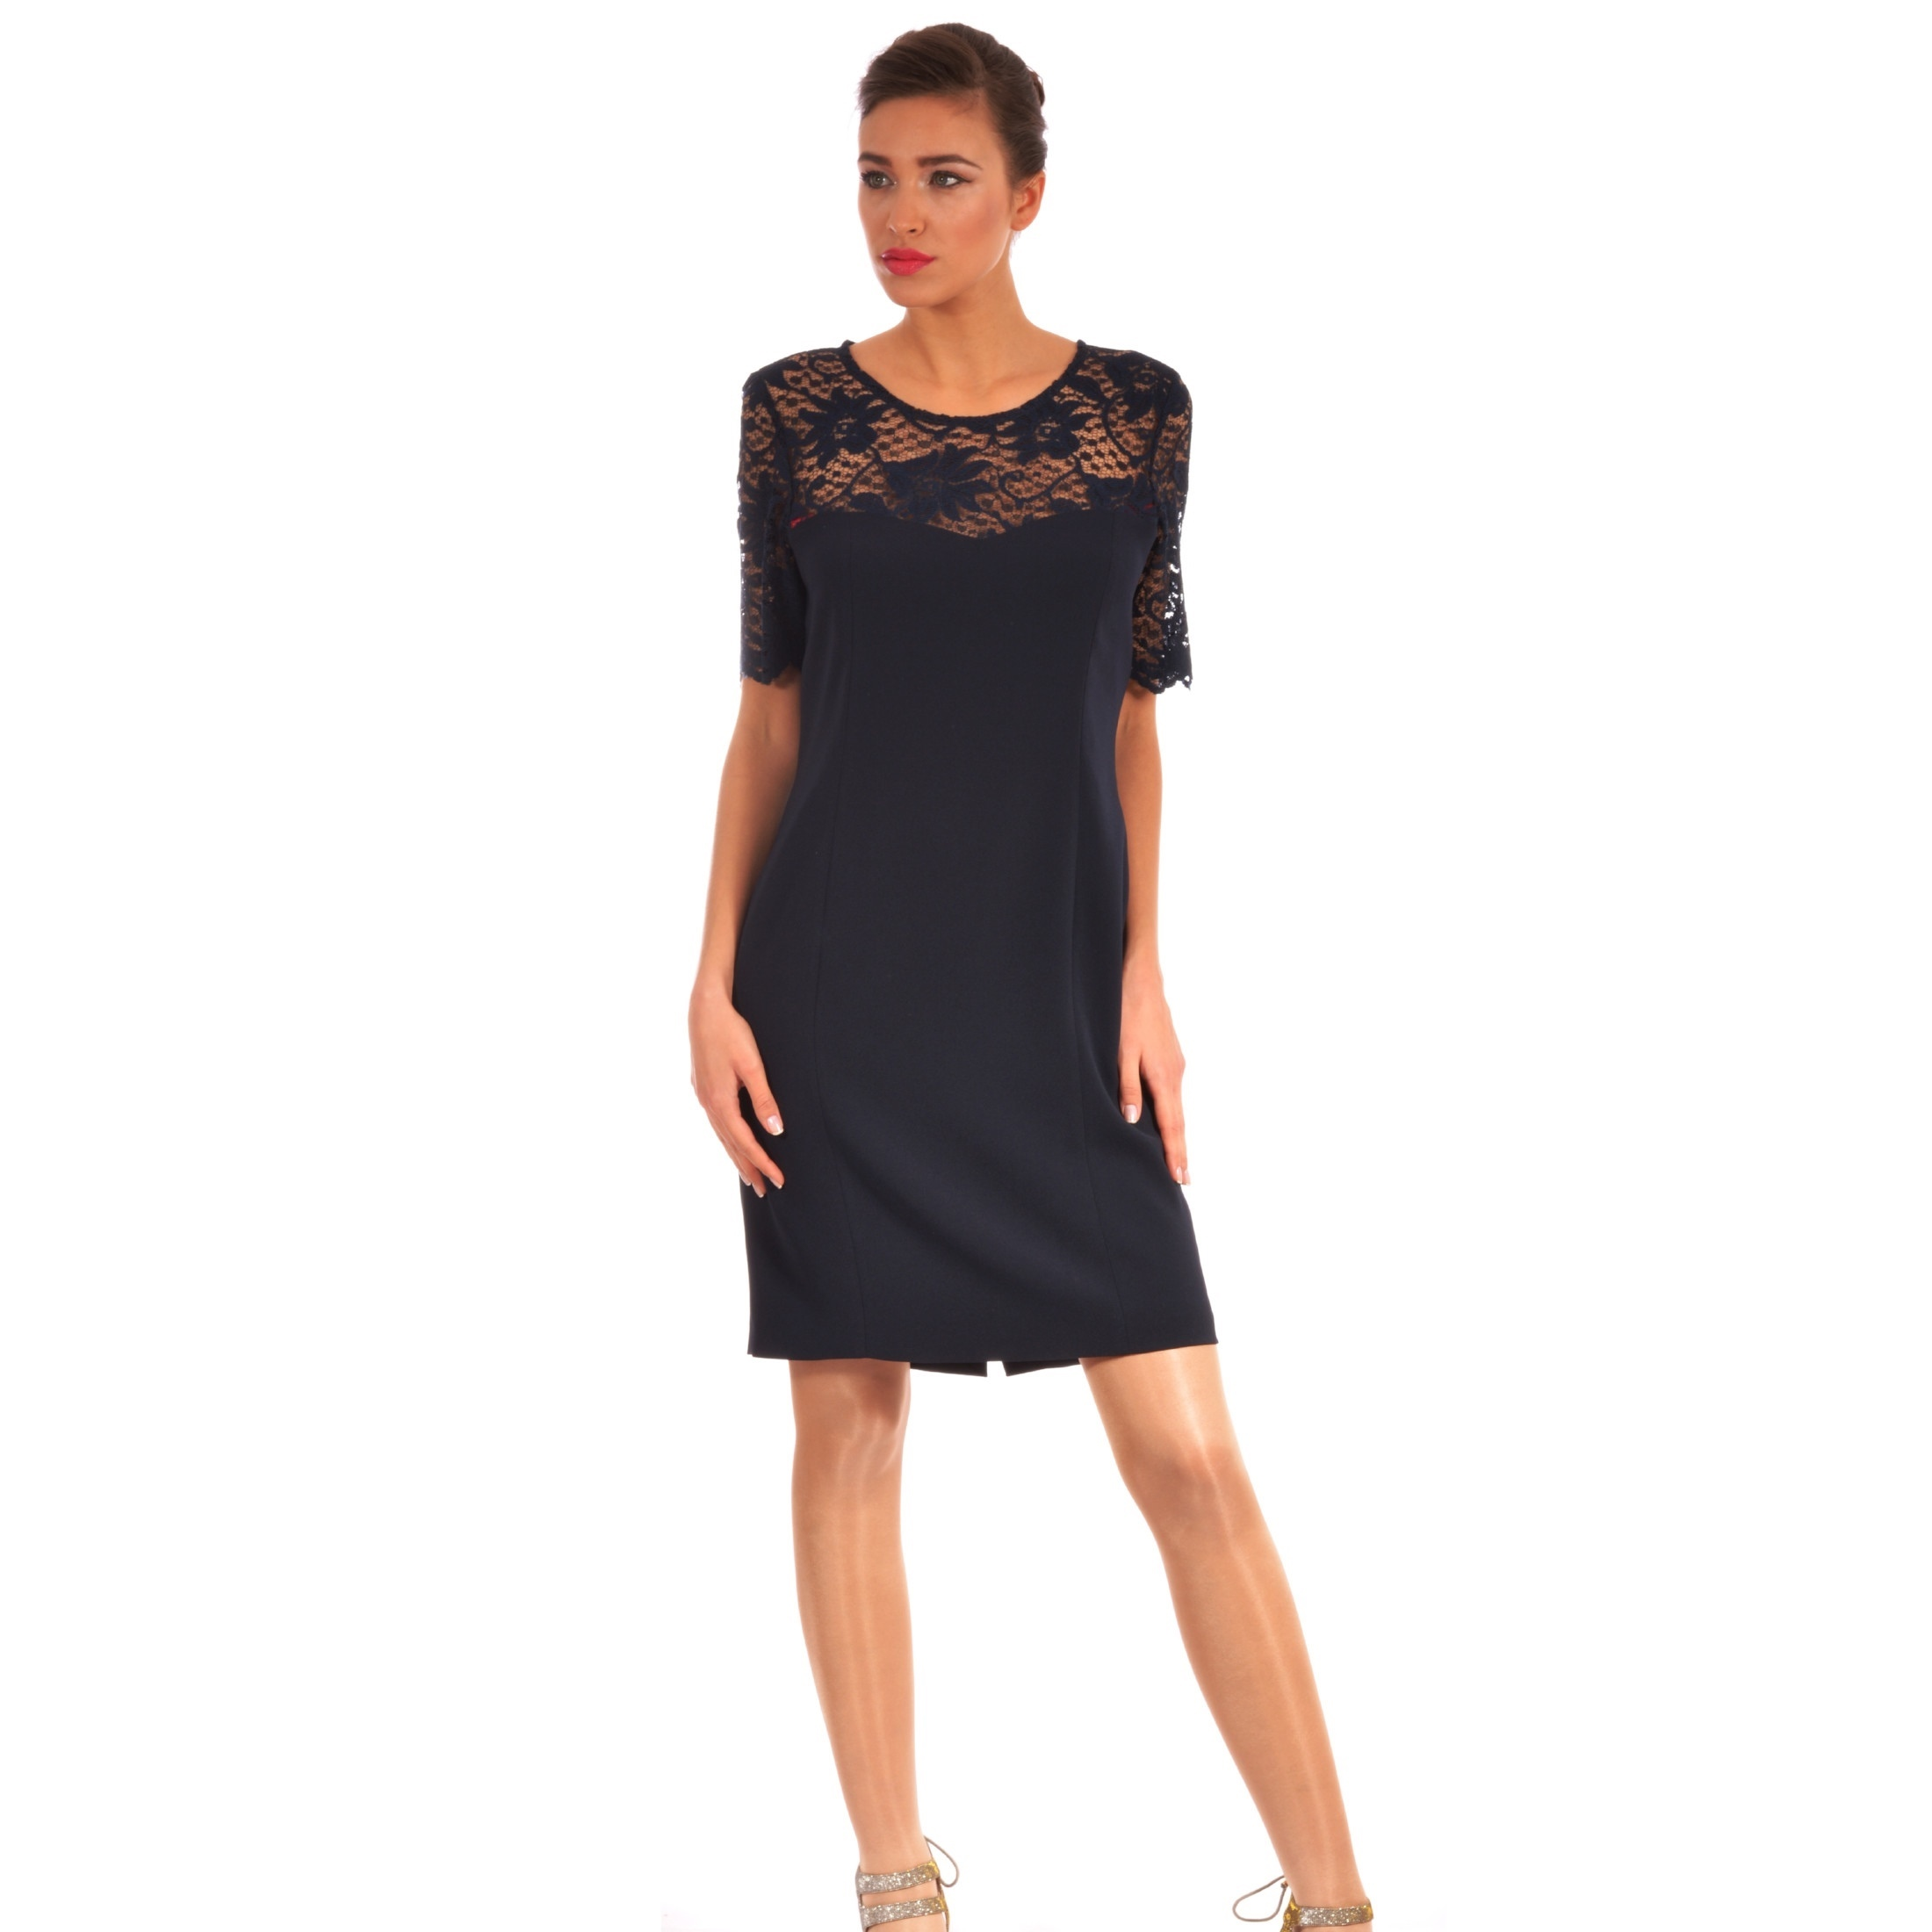 elegant lady m dark blue dress with lace, elegantna tamno plava haljina sa čipkom